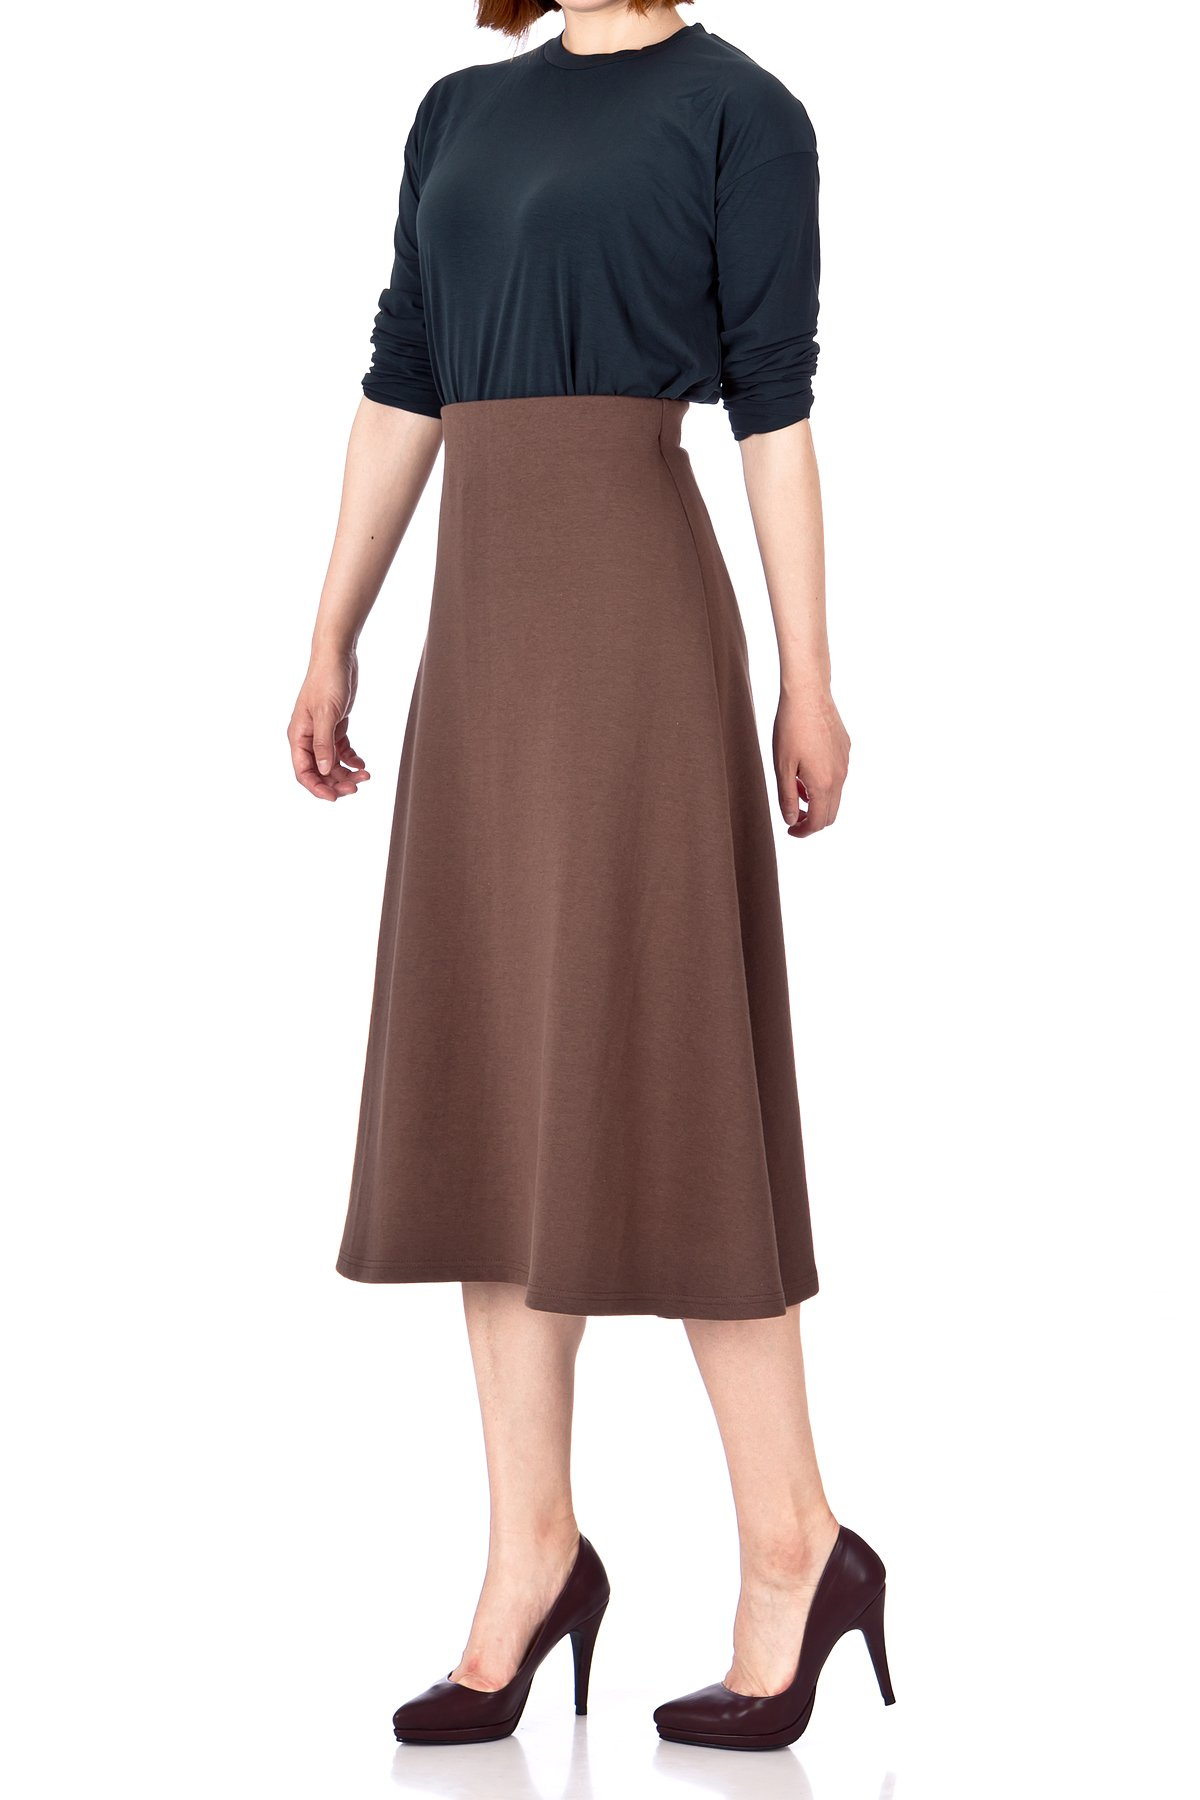 Elastic Waist A line Flared Long Skirt Brown 02